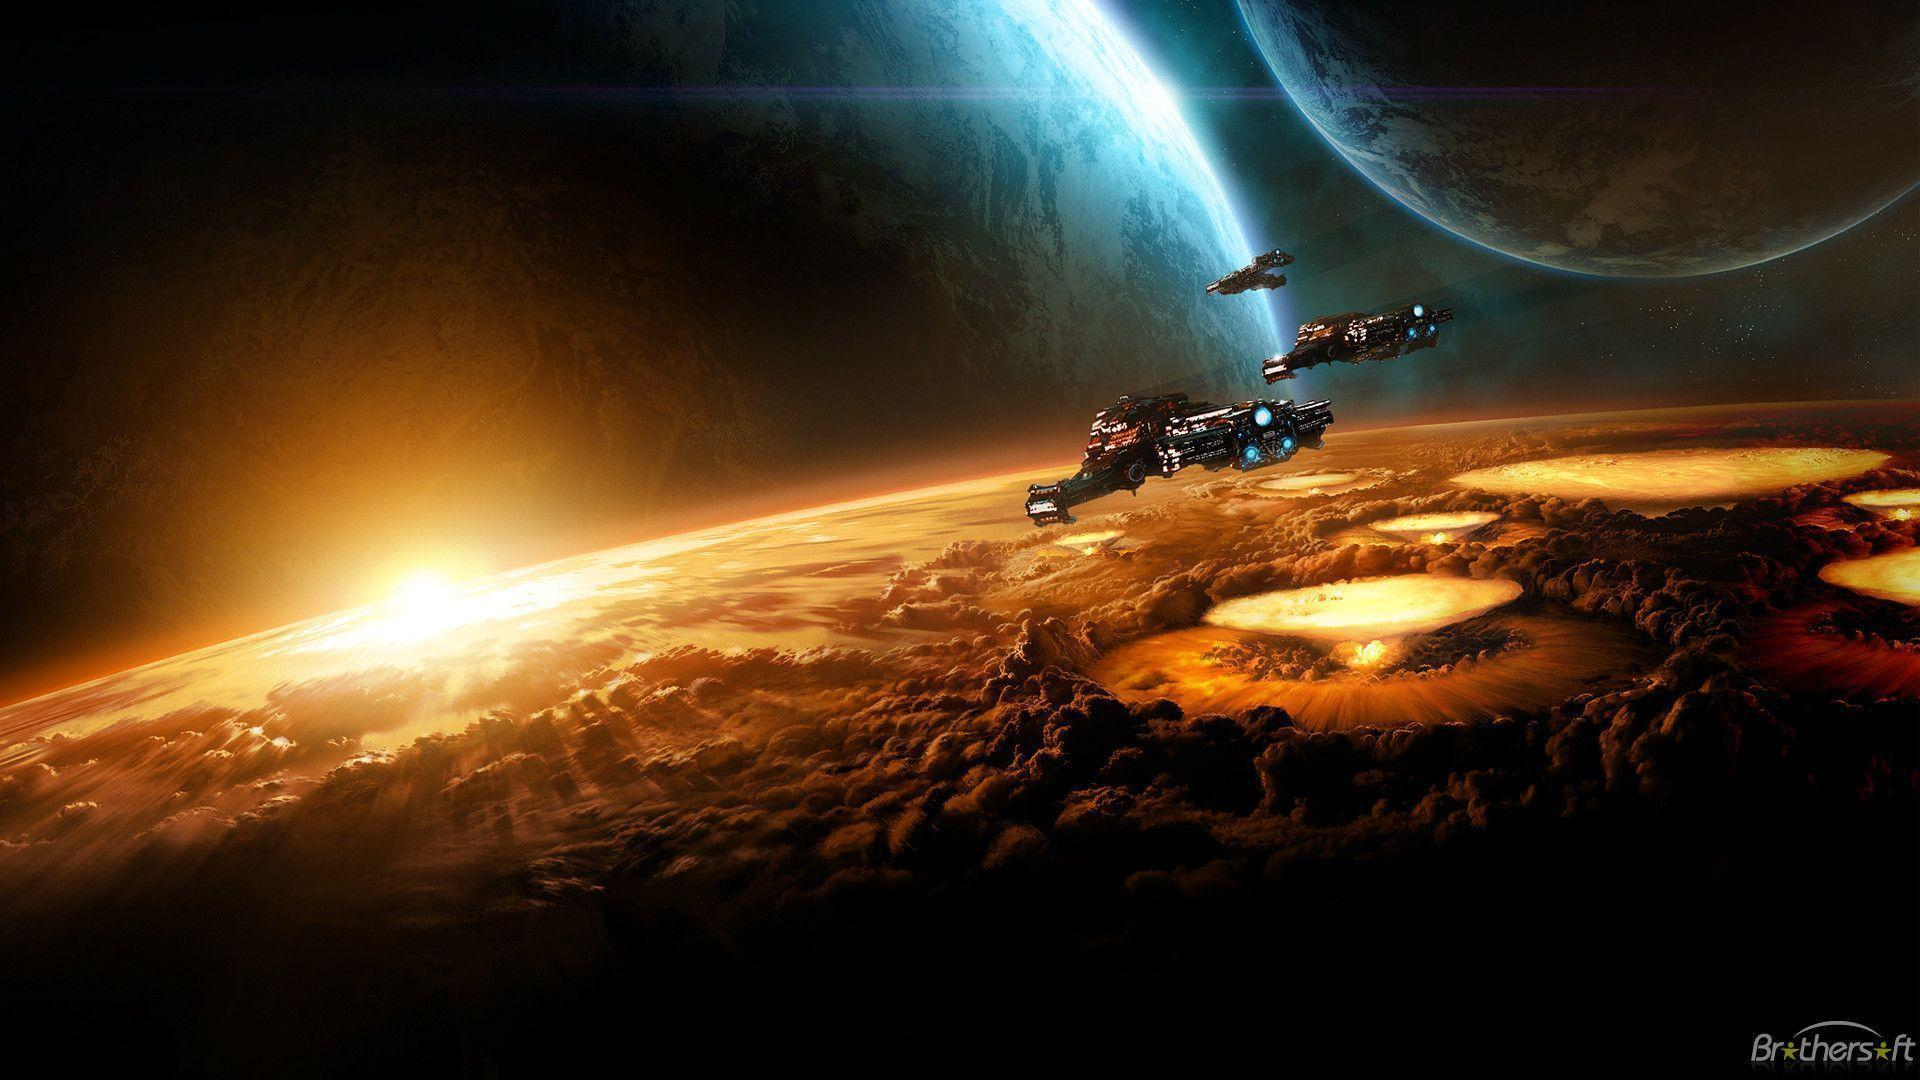 Starcraft II HD Wallpapers and Background Images   stmednet 1920x1080